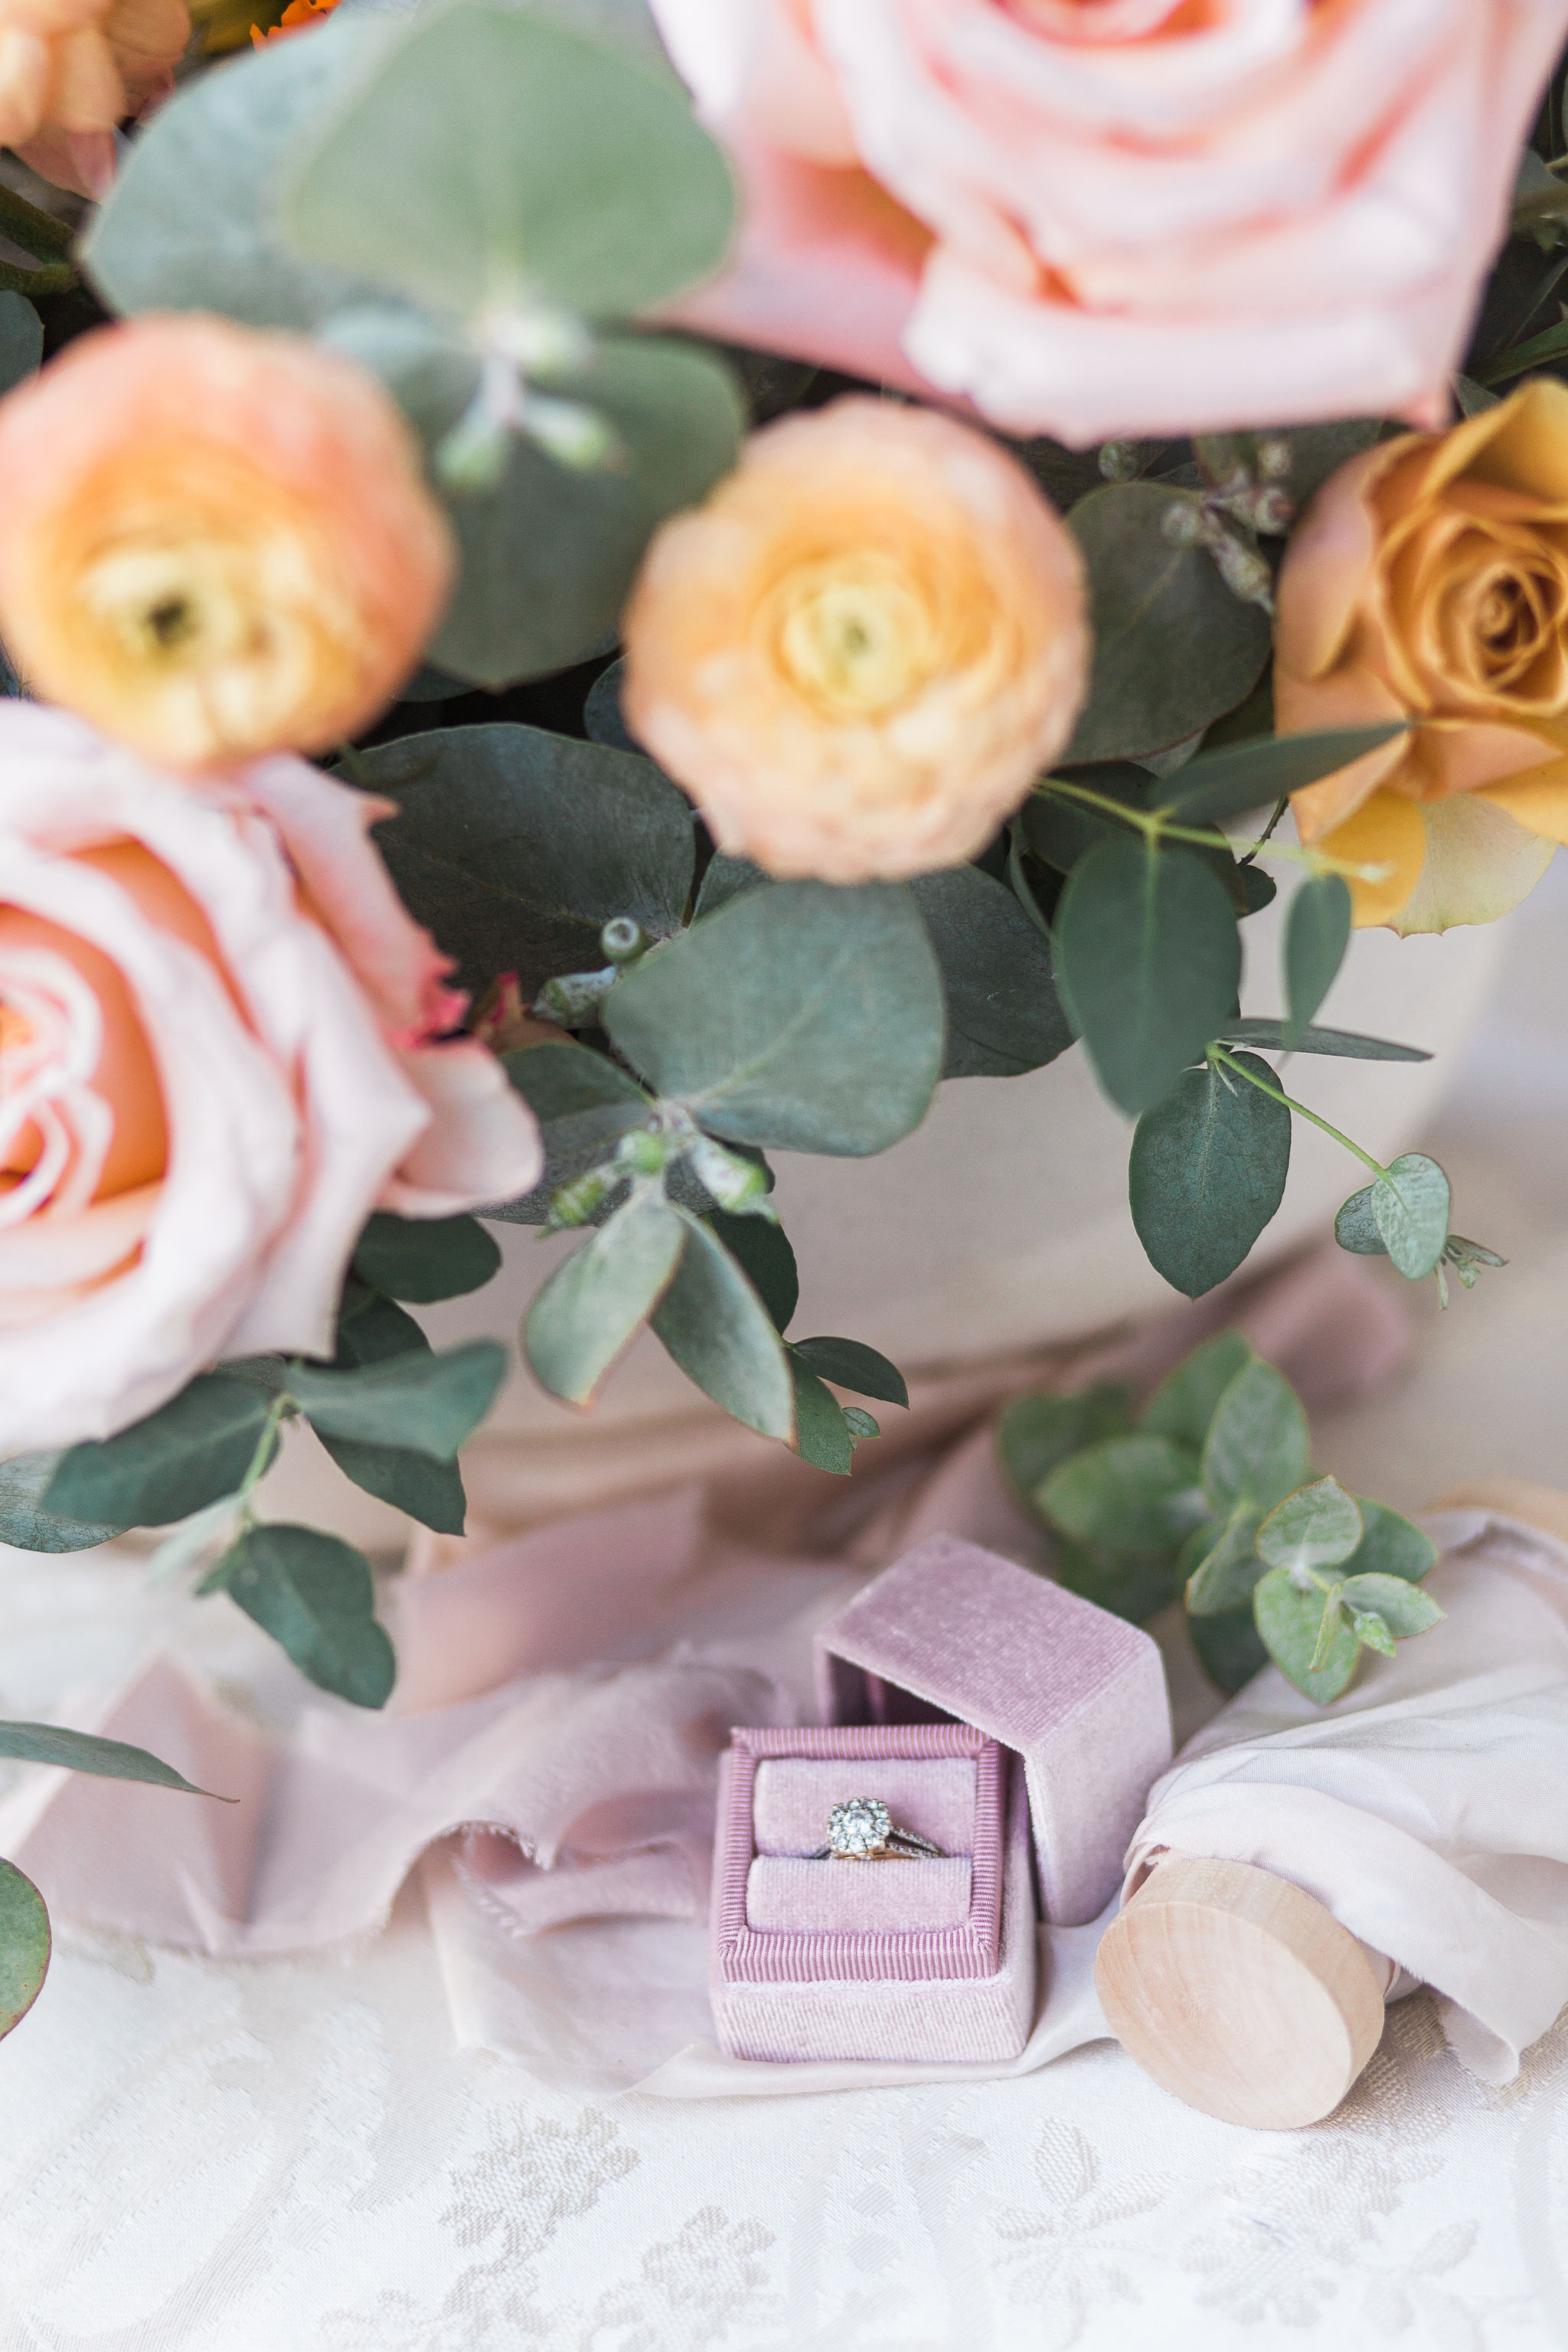 Georgia-Ruth-Photography-Flat-Lays-Table-Details-126.jpg